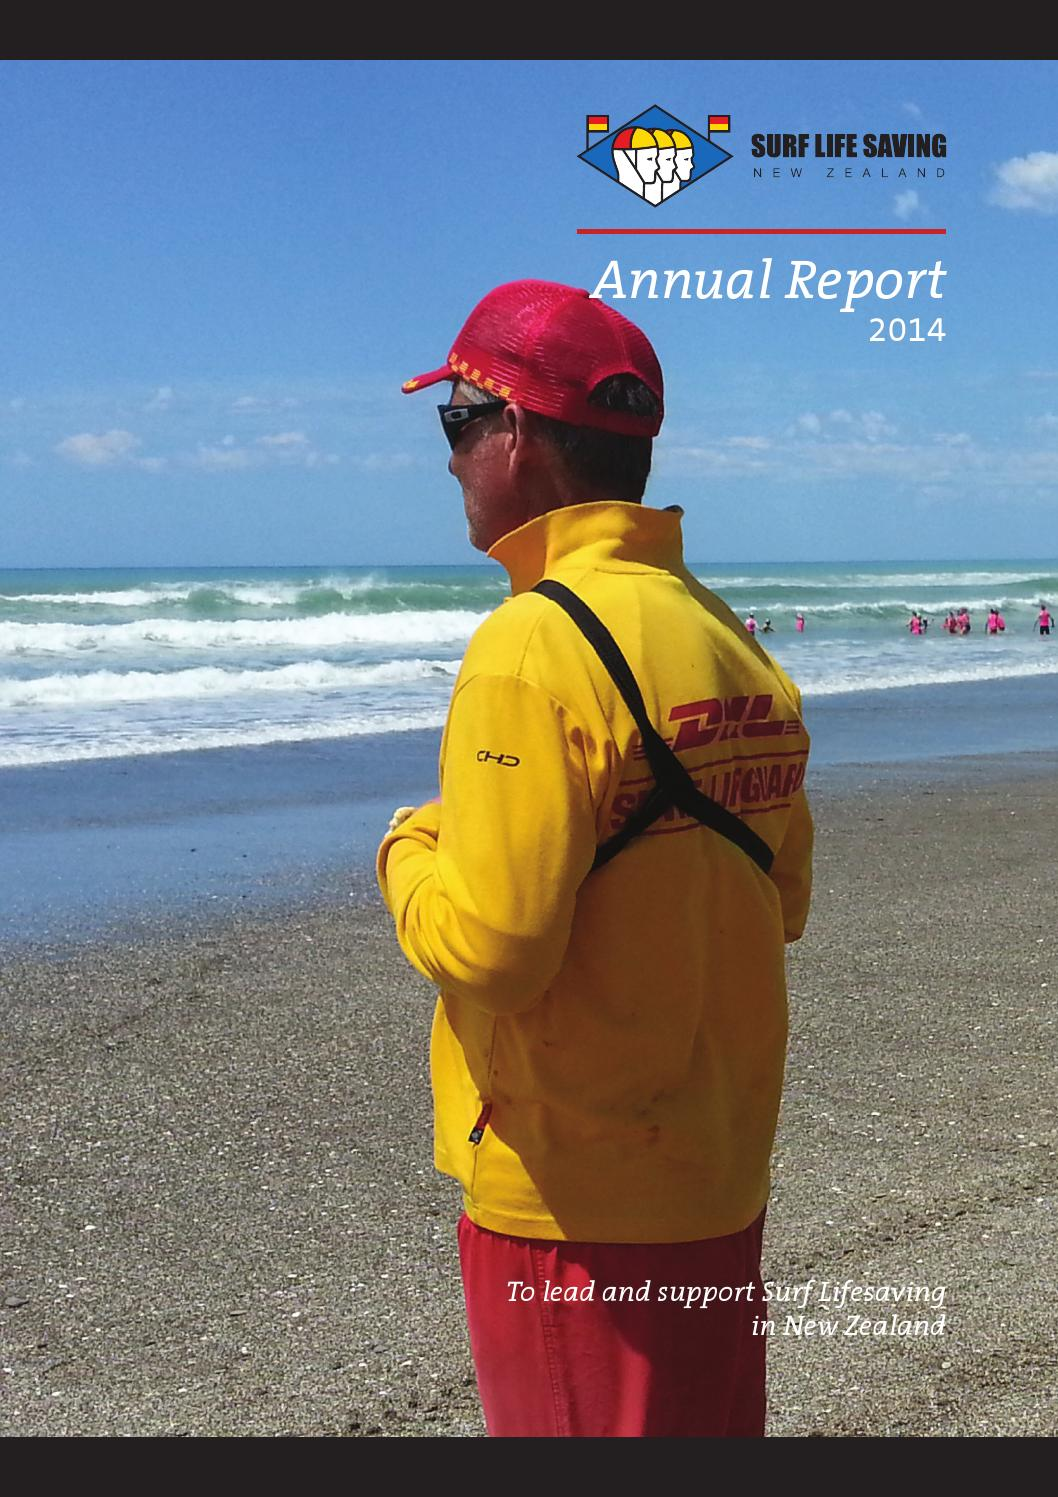 b61b09a96bc 2014 Annual Report by Surf Life Saving New Zealand - issuu